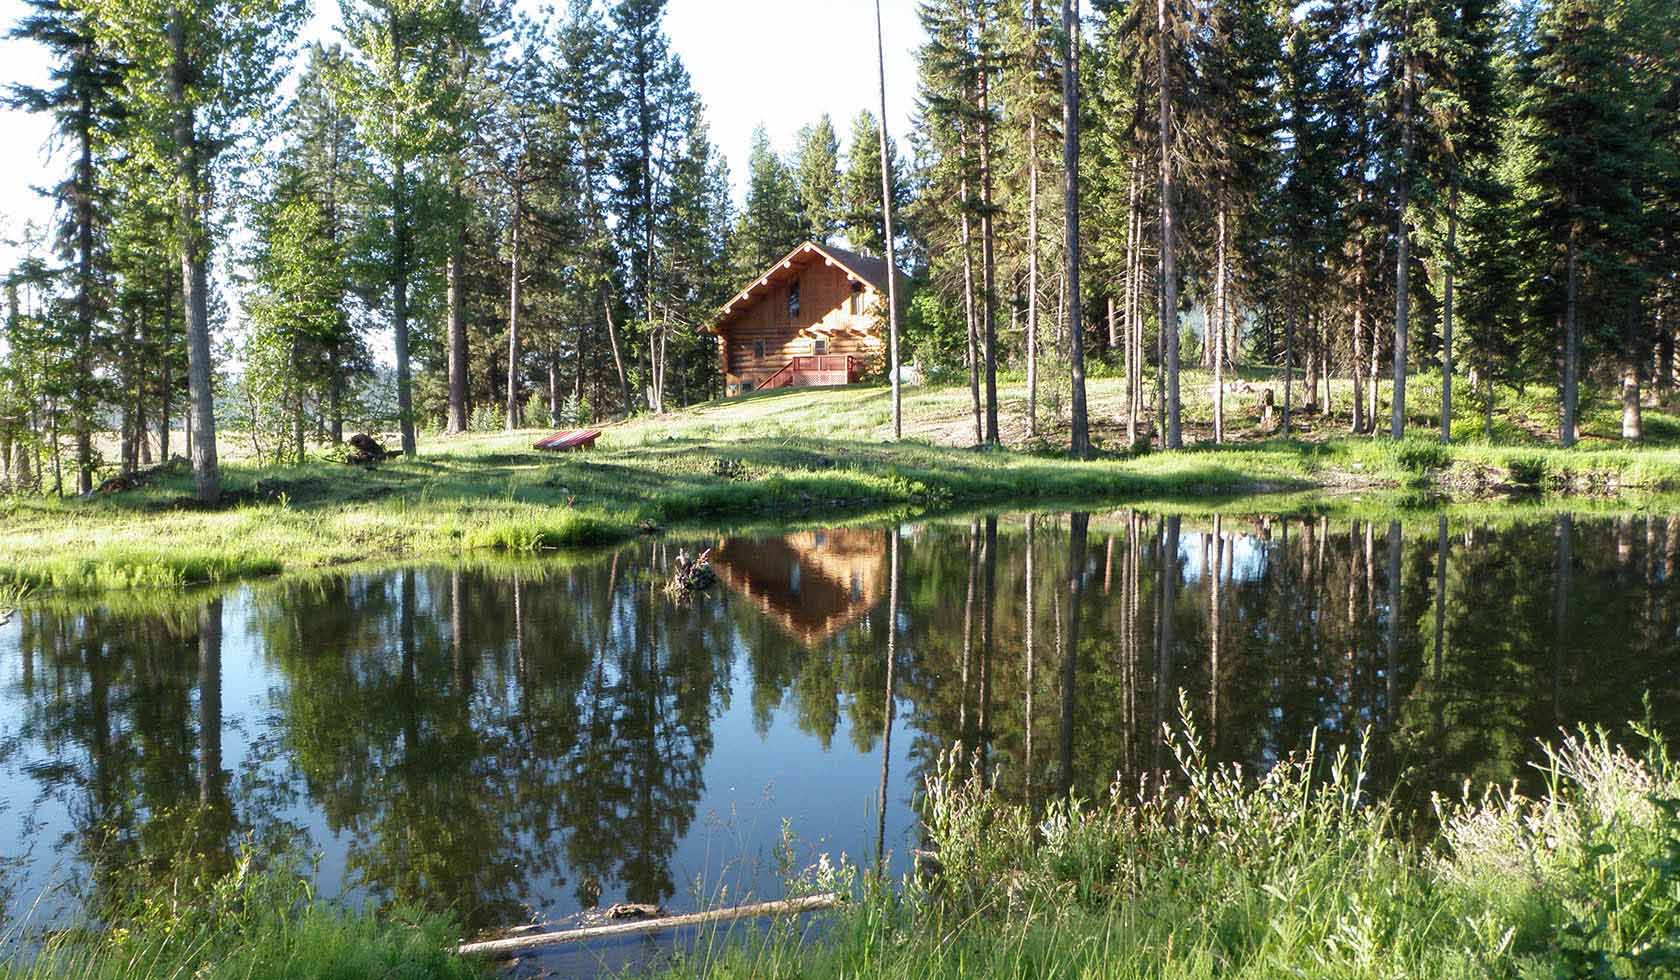 seeley lake chat Search seeley lake houses for sale and other seeley lake real estate find single family homes in seeley lake, mt.